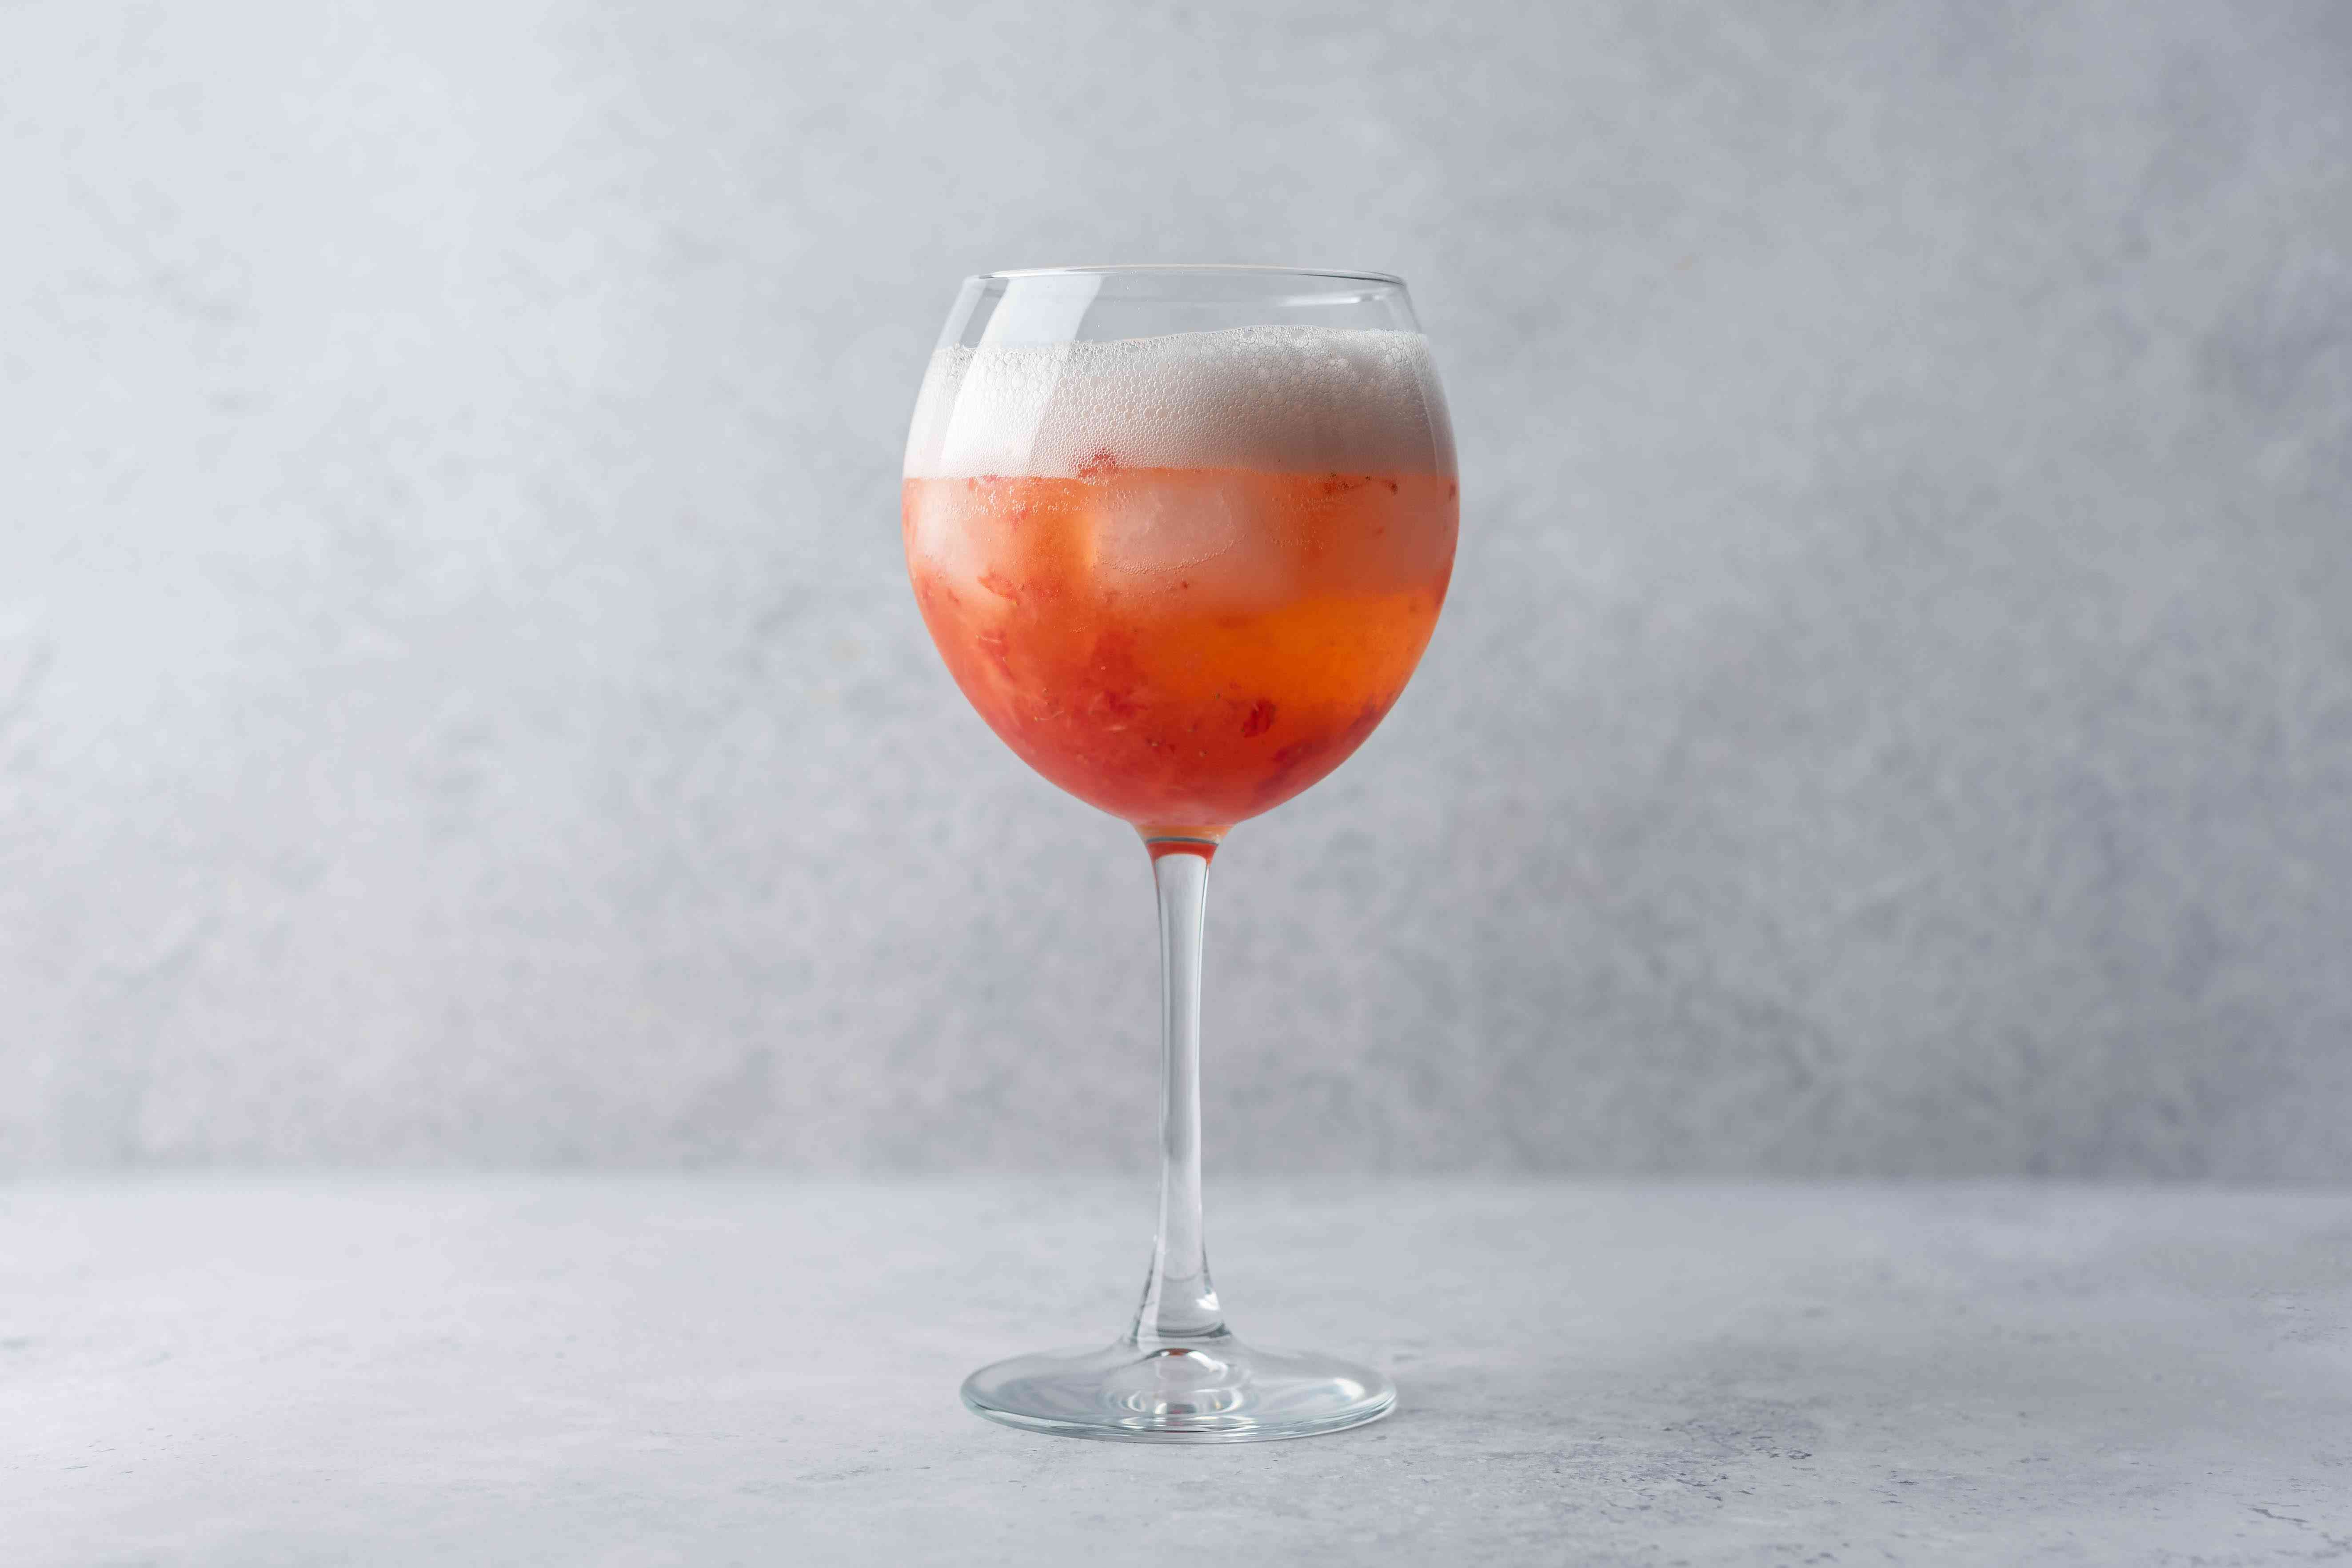 Top the cocktail with sparkling wine